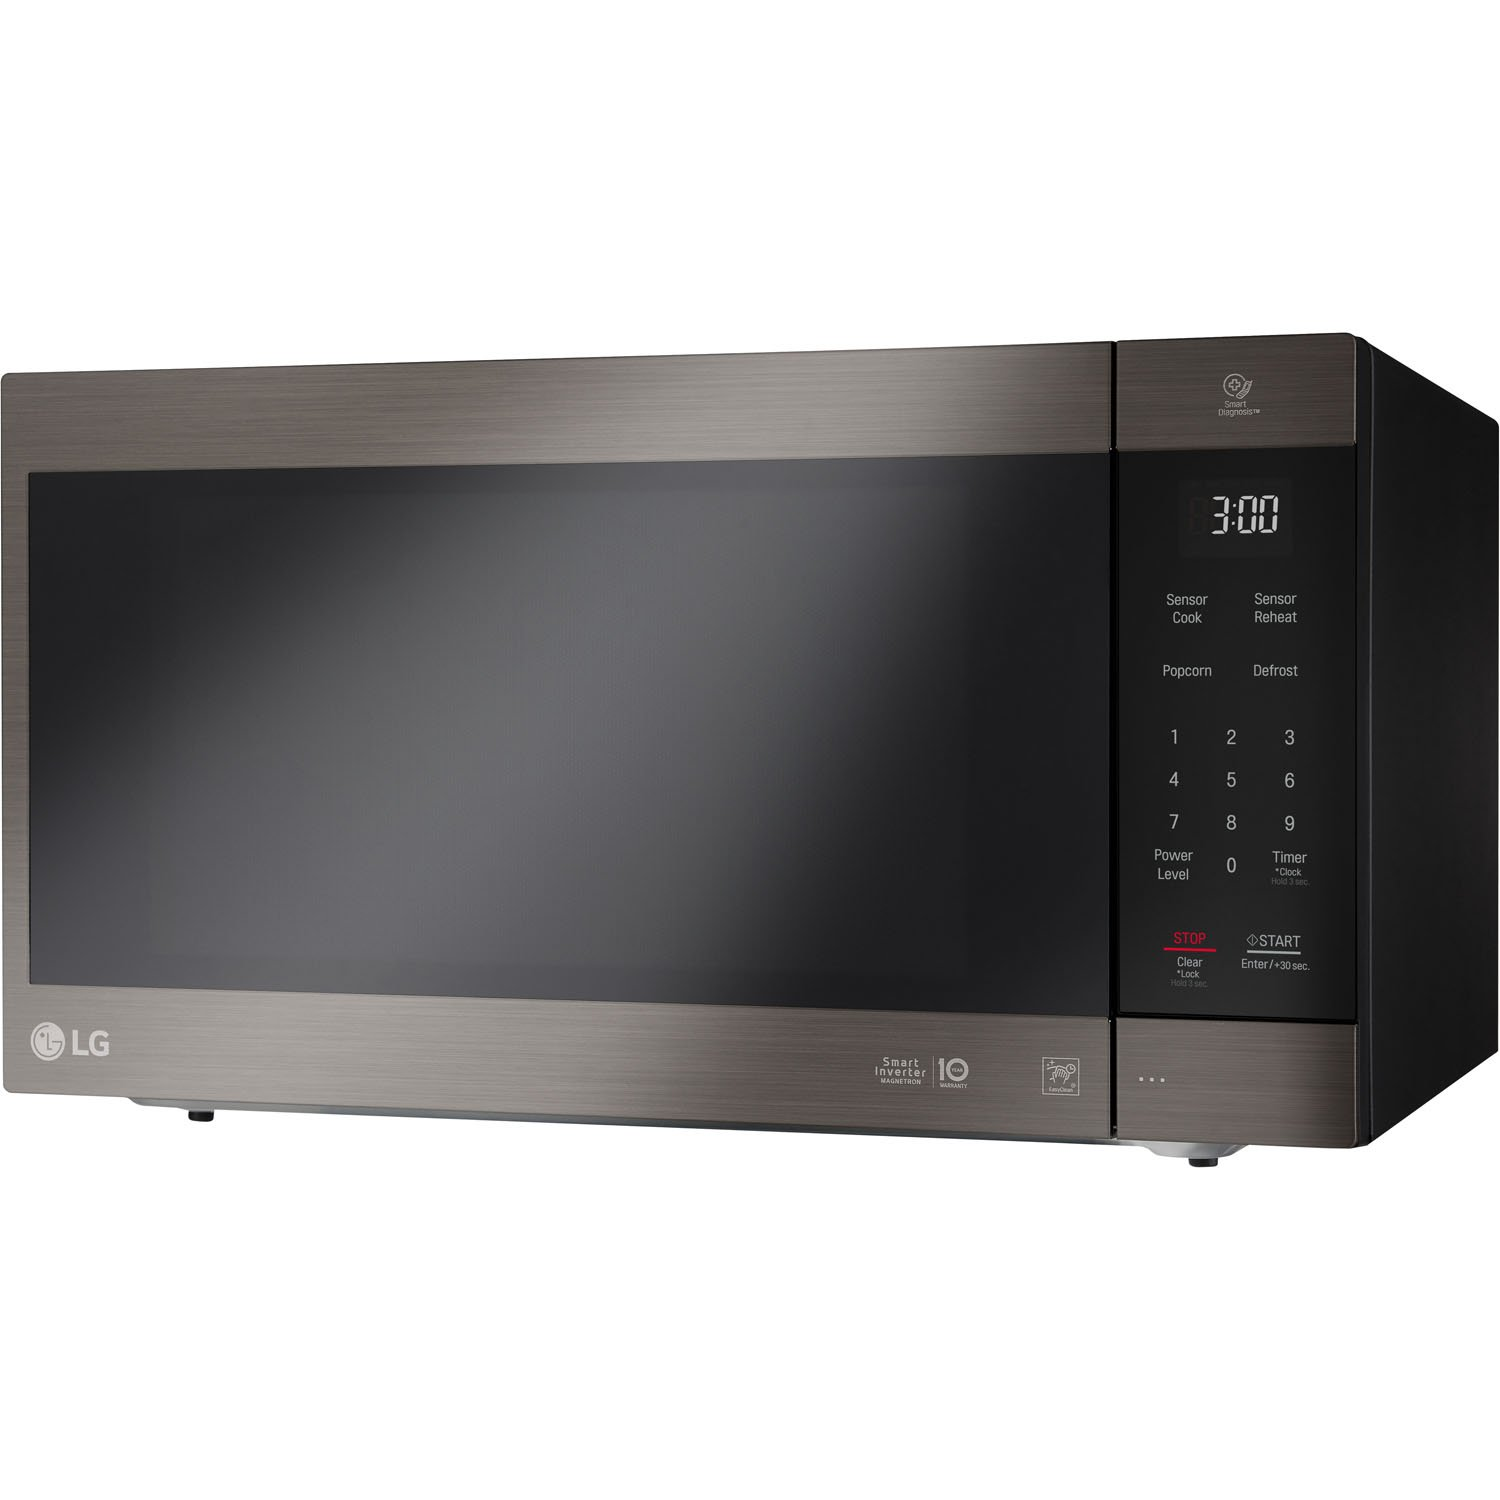 LG 2.0 Cu. Ft. NeoChef Countertop Microwave in Black Stainless Steel - LMC2075BD